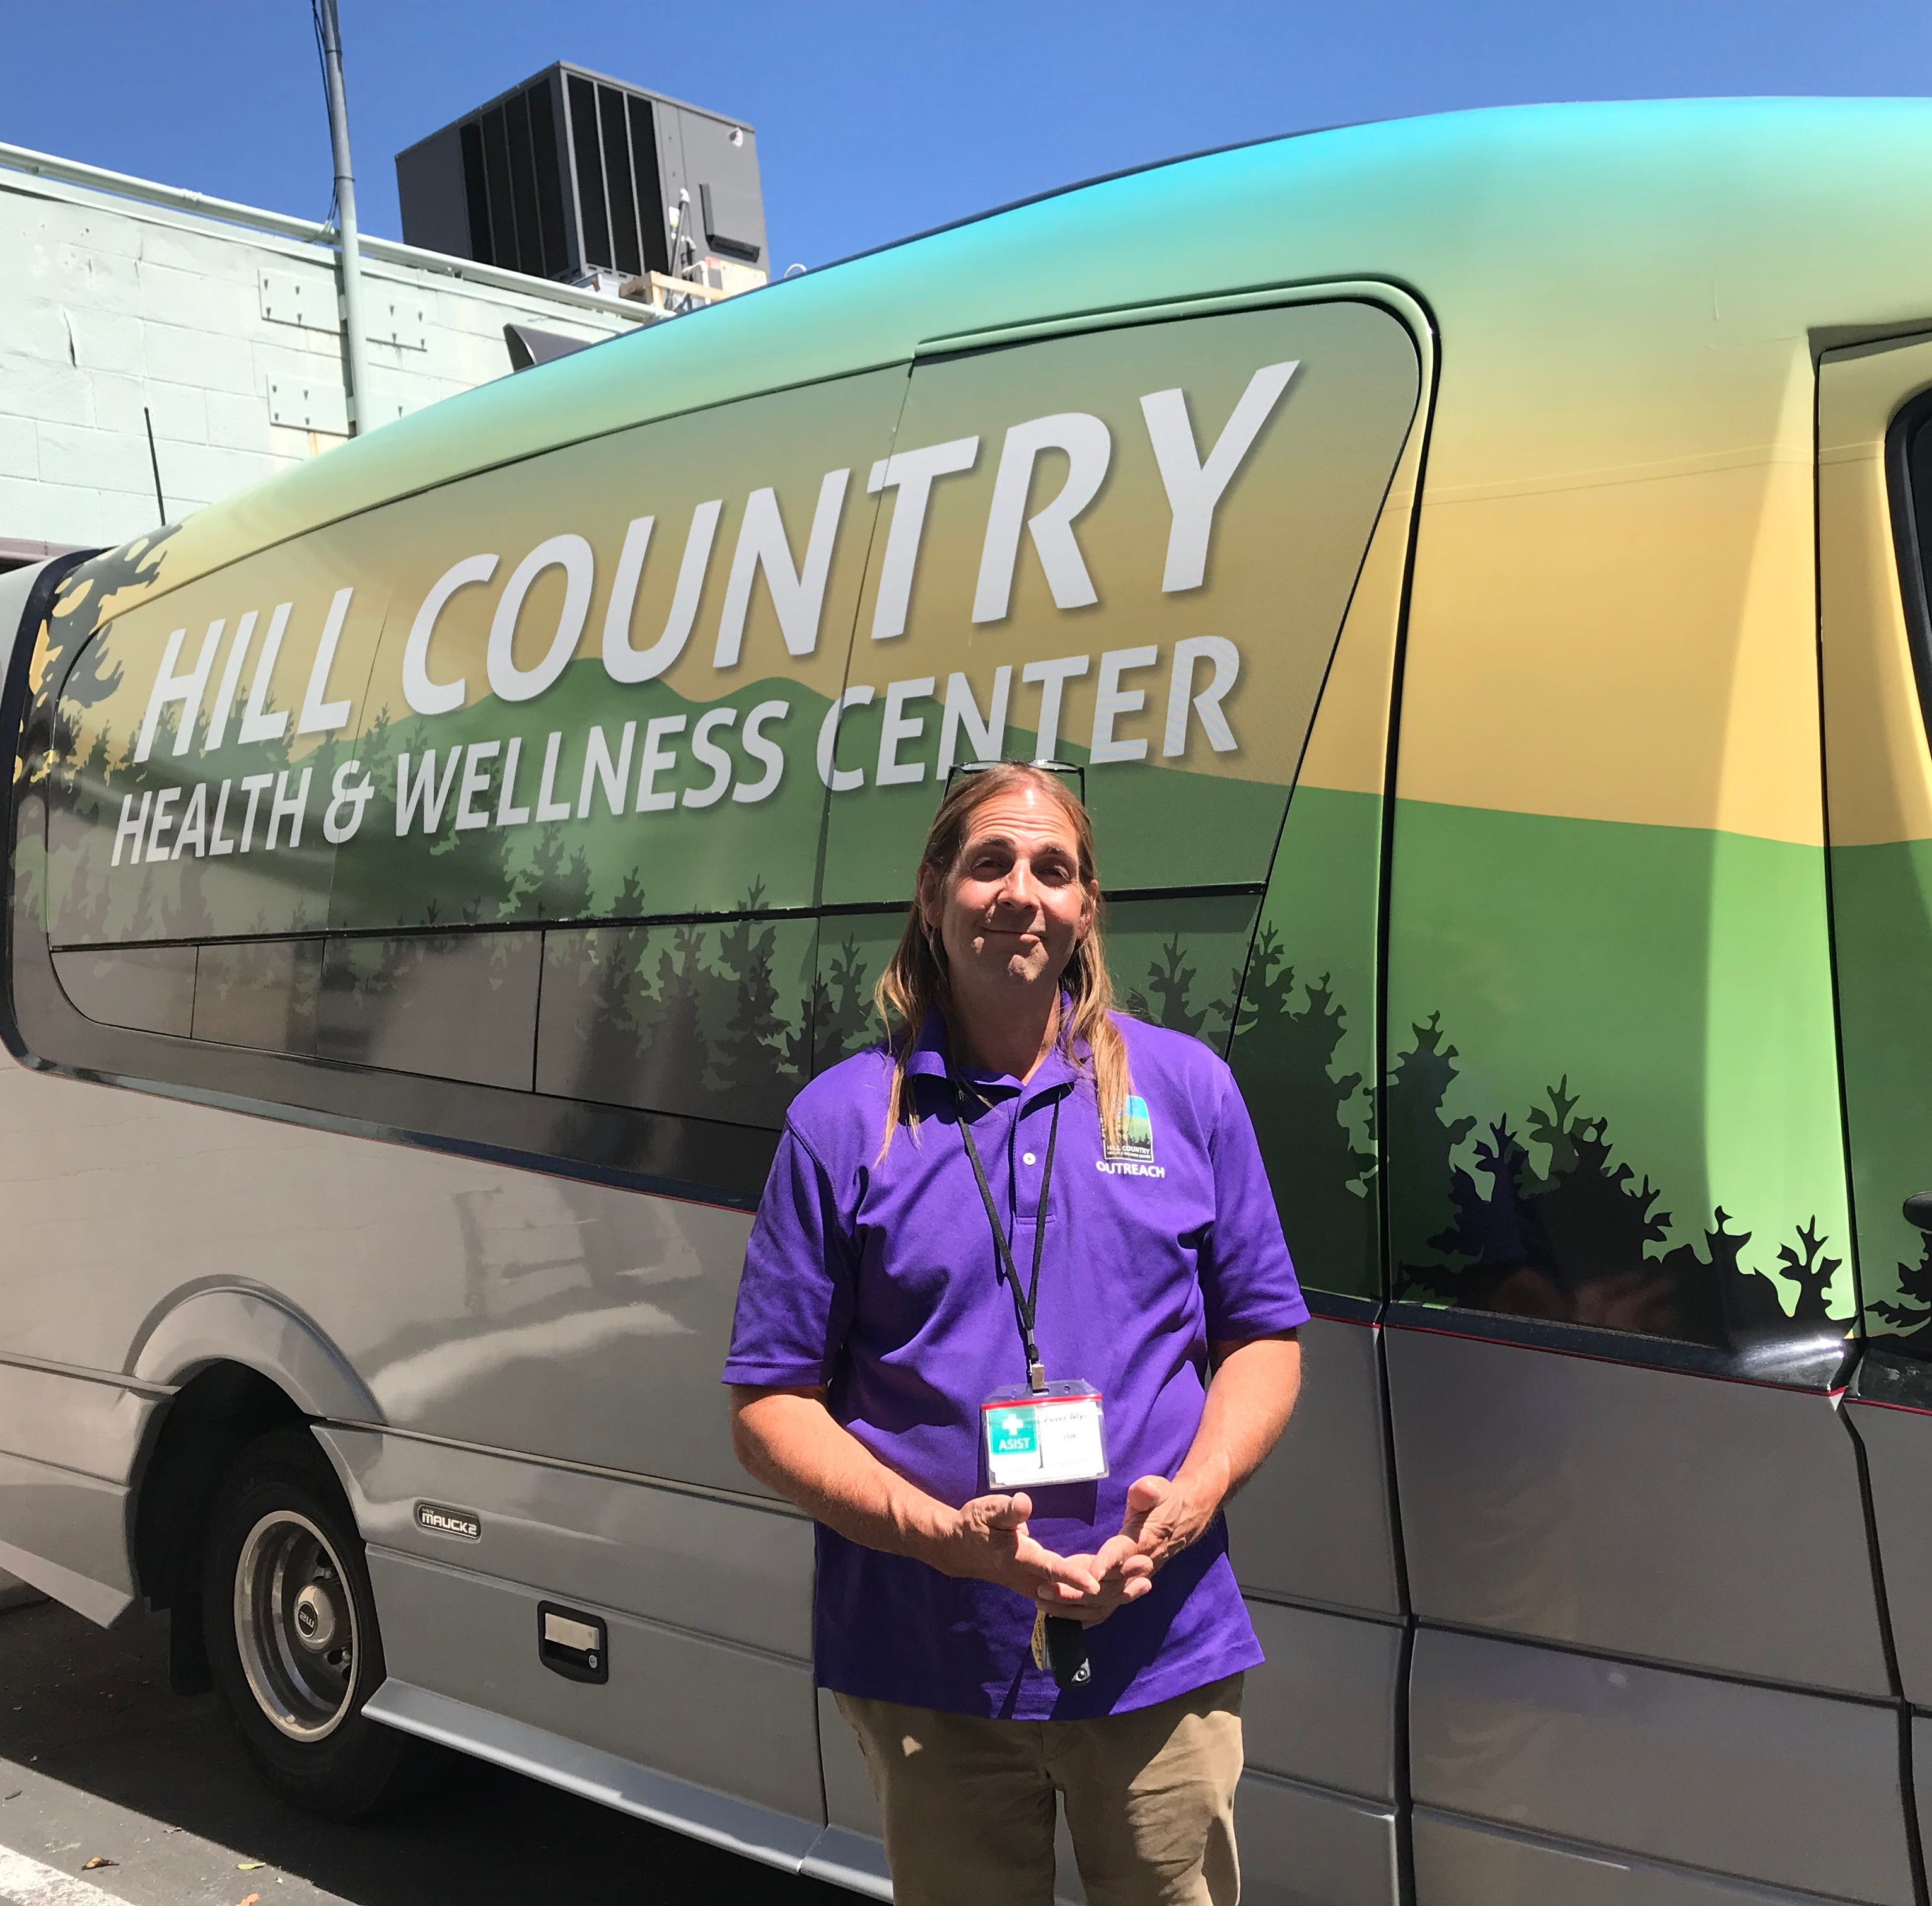 Hill Country's mobile mental health crisis unit logs 200+ calls in Redding since January